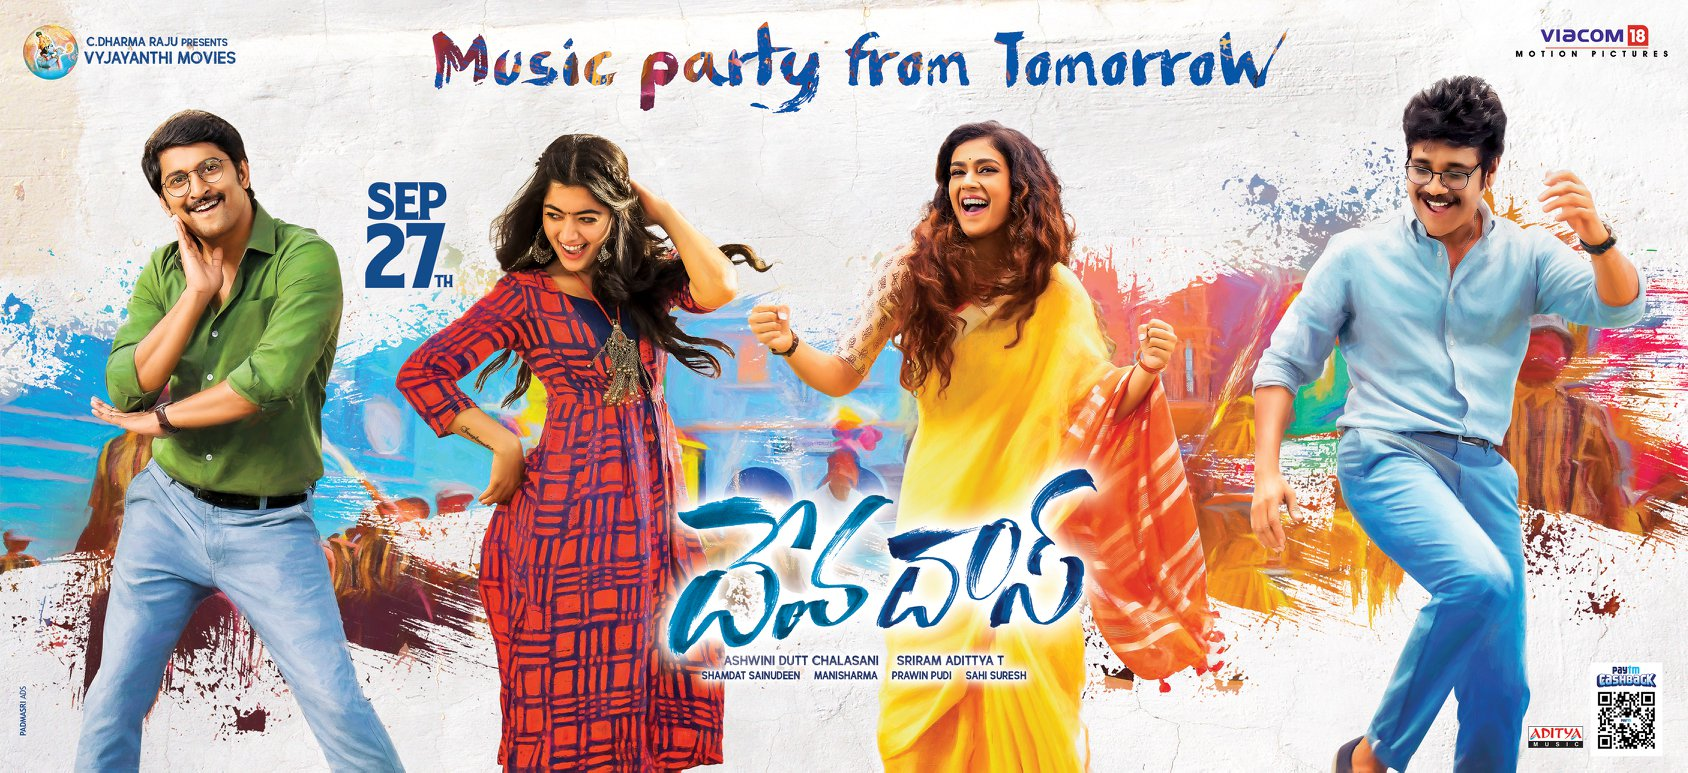 Devadas Music Party from Tomorrow Poster